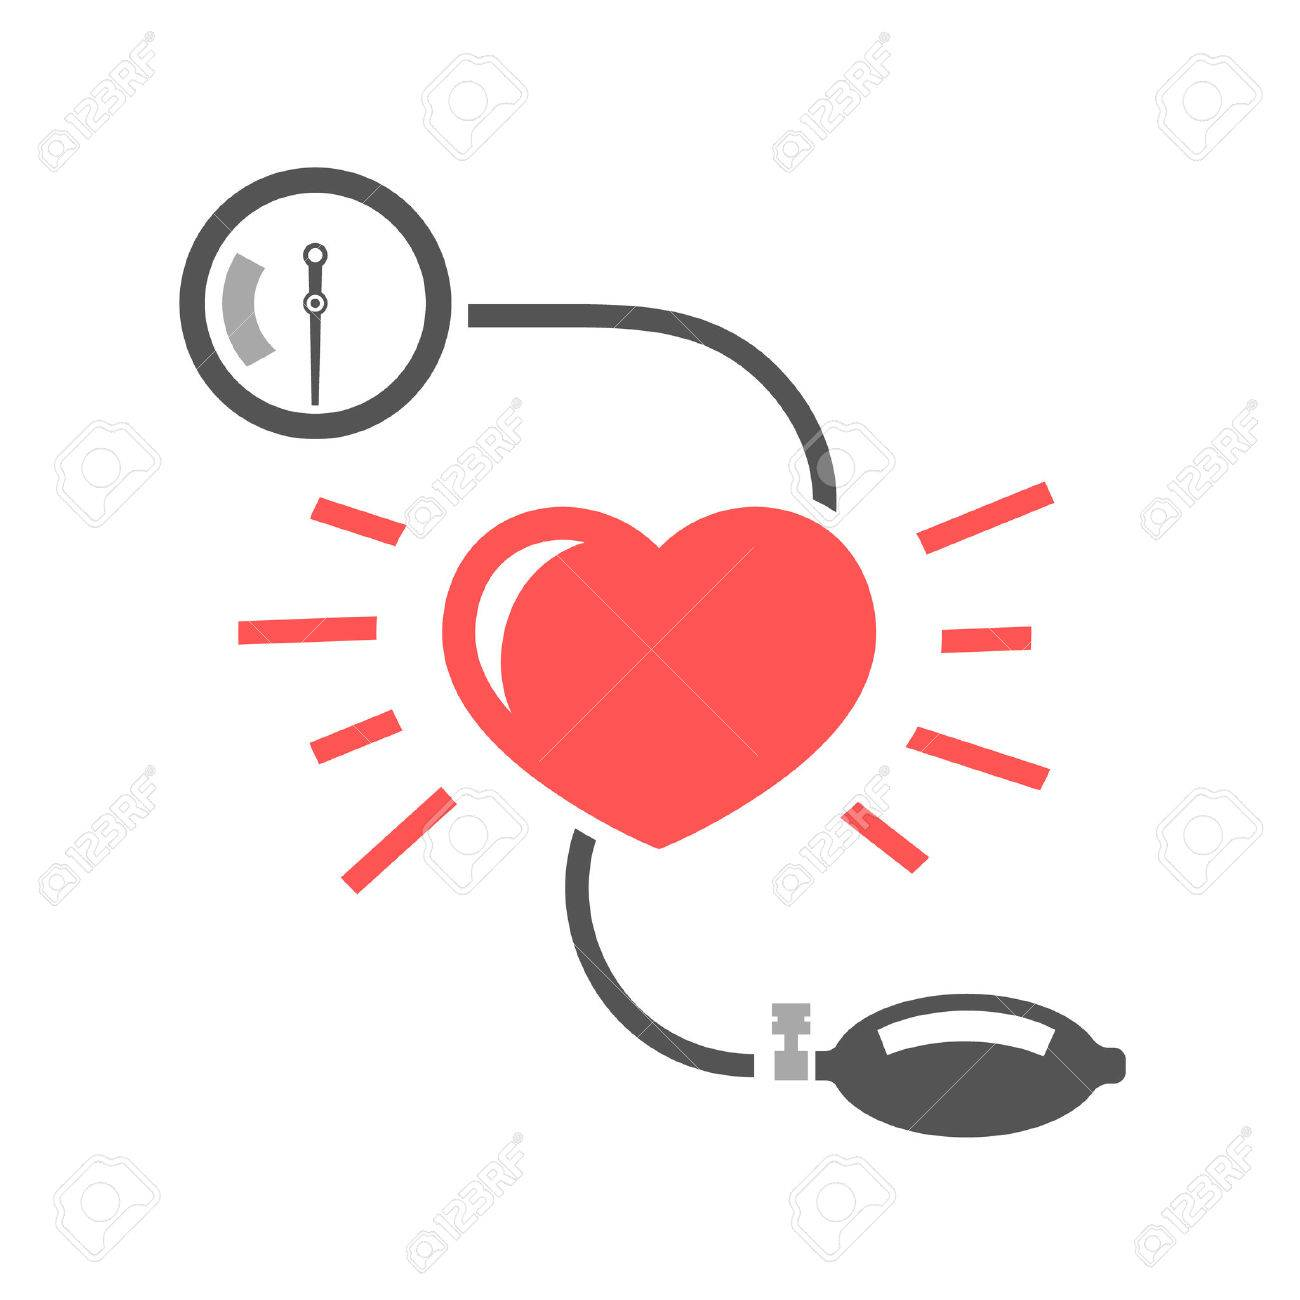 Beautiful vector illustration of blood pressure measuring. Abstract medicine symbol. Useful for sign development, indographics, postcard, leaflet, brochure, print, book and poster graphic design. - 51896683